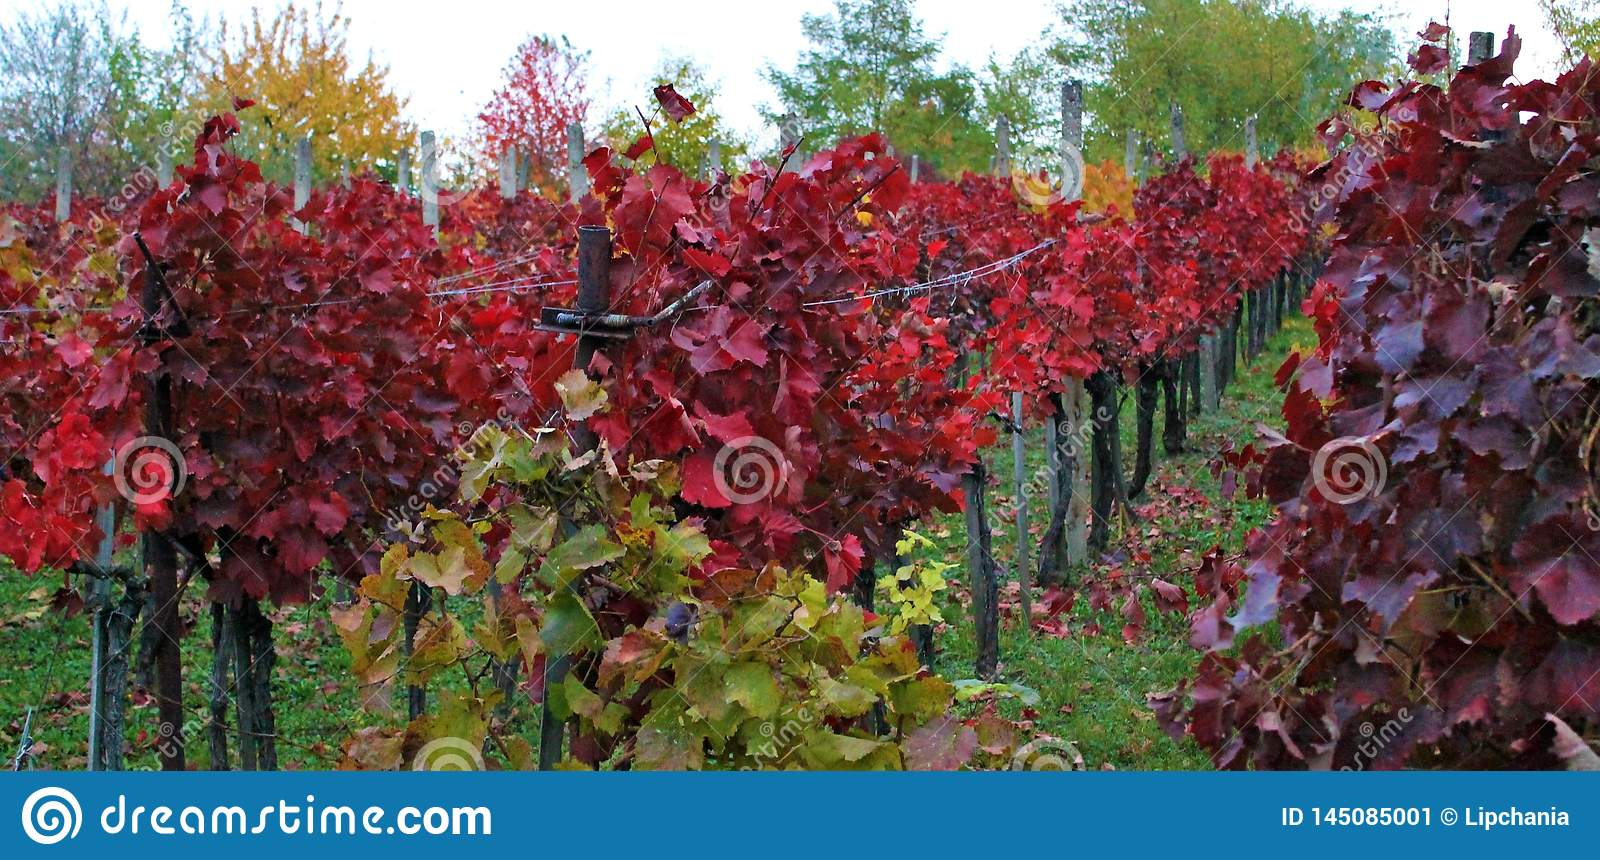 Red vineyards of Eger, Hungary